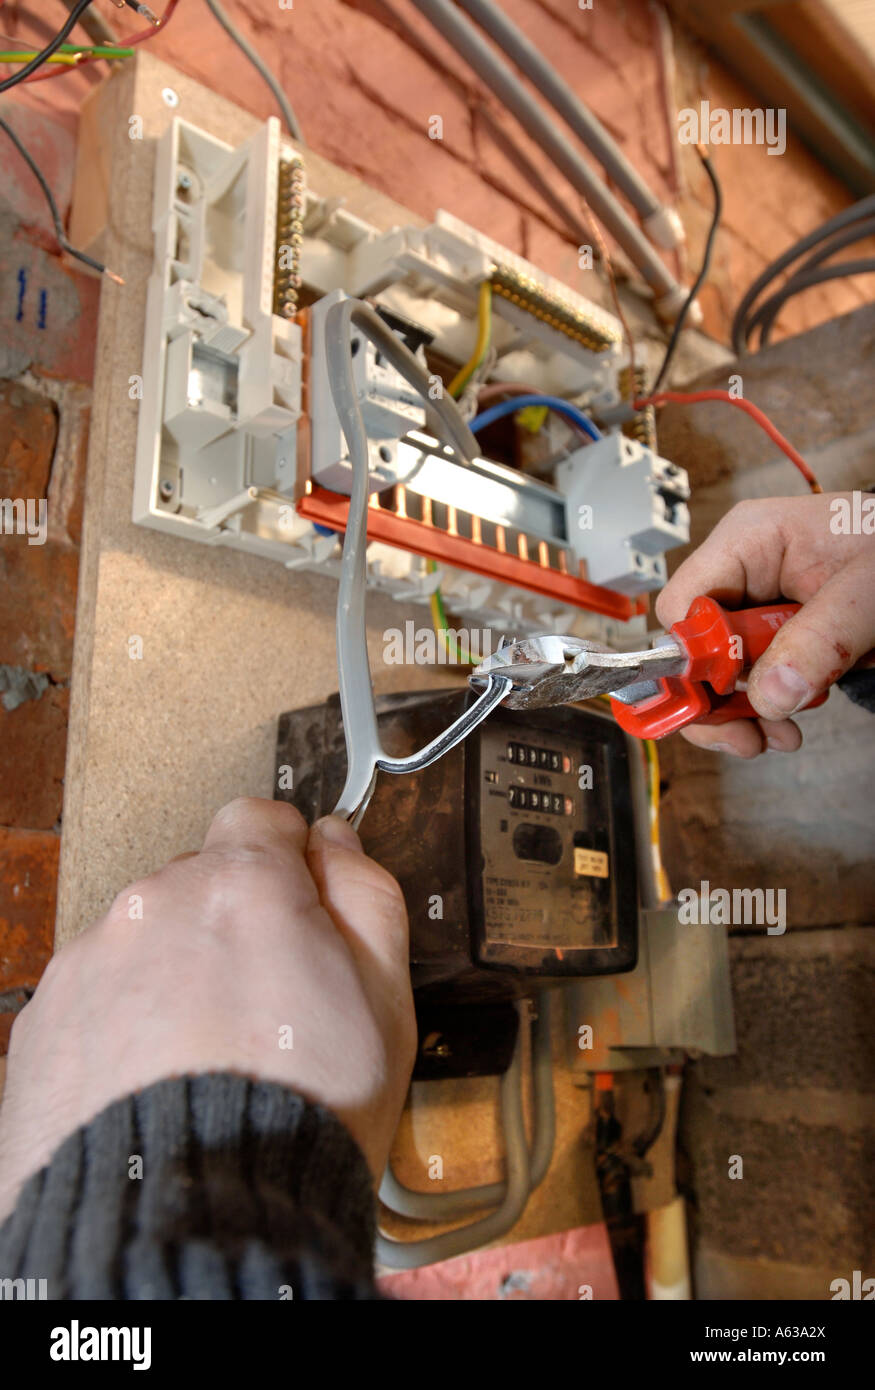 Consumer Unit Stock Photos Images Alamy Old Style Air Conditioner Fuse Box An Electrician Removes Electricity Boxes And Installs A Memera Uk